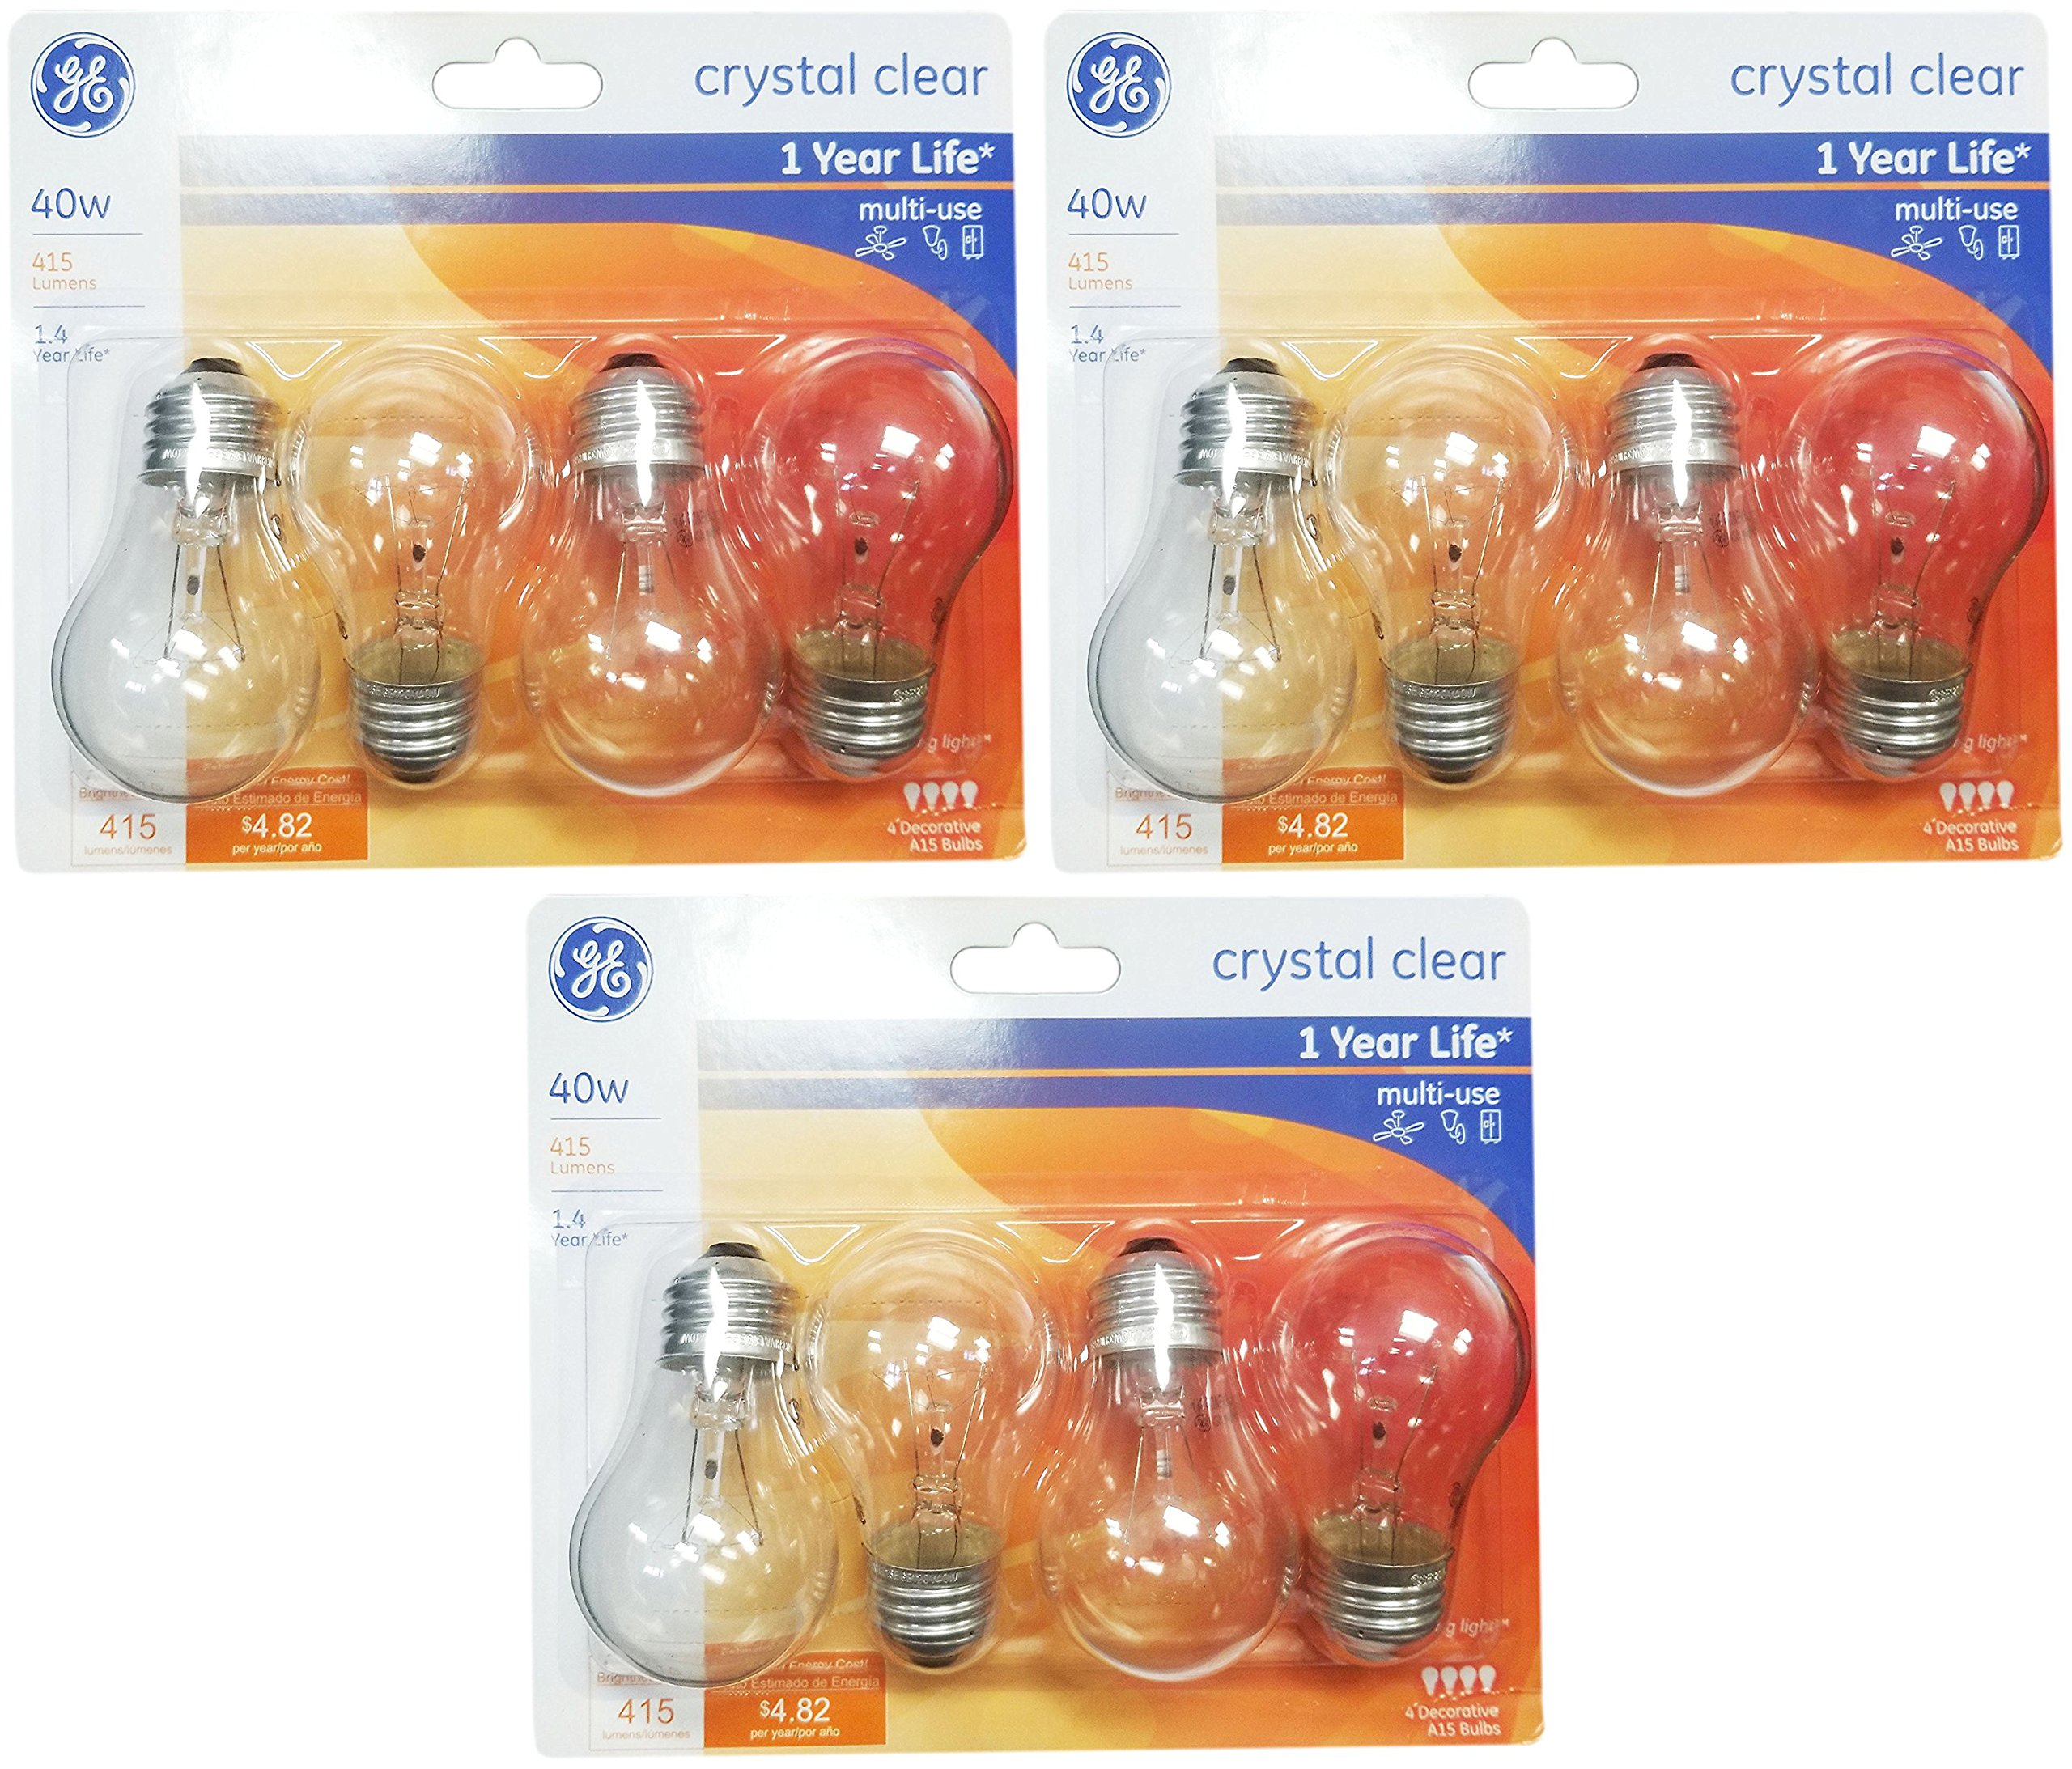 40 Watt In Lumen Ge Lighting 76580 Appliance 40 Watt 415 Lumen A15 Light Bulb With Medium Base 12 Pack